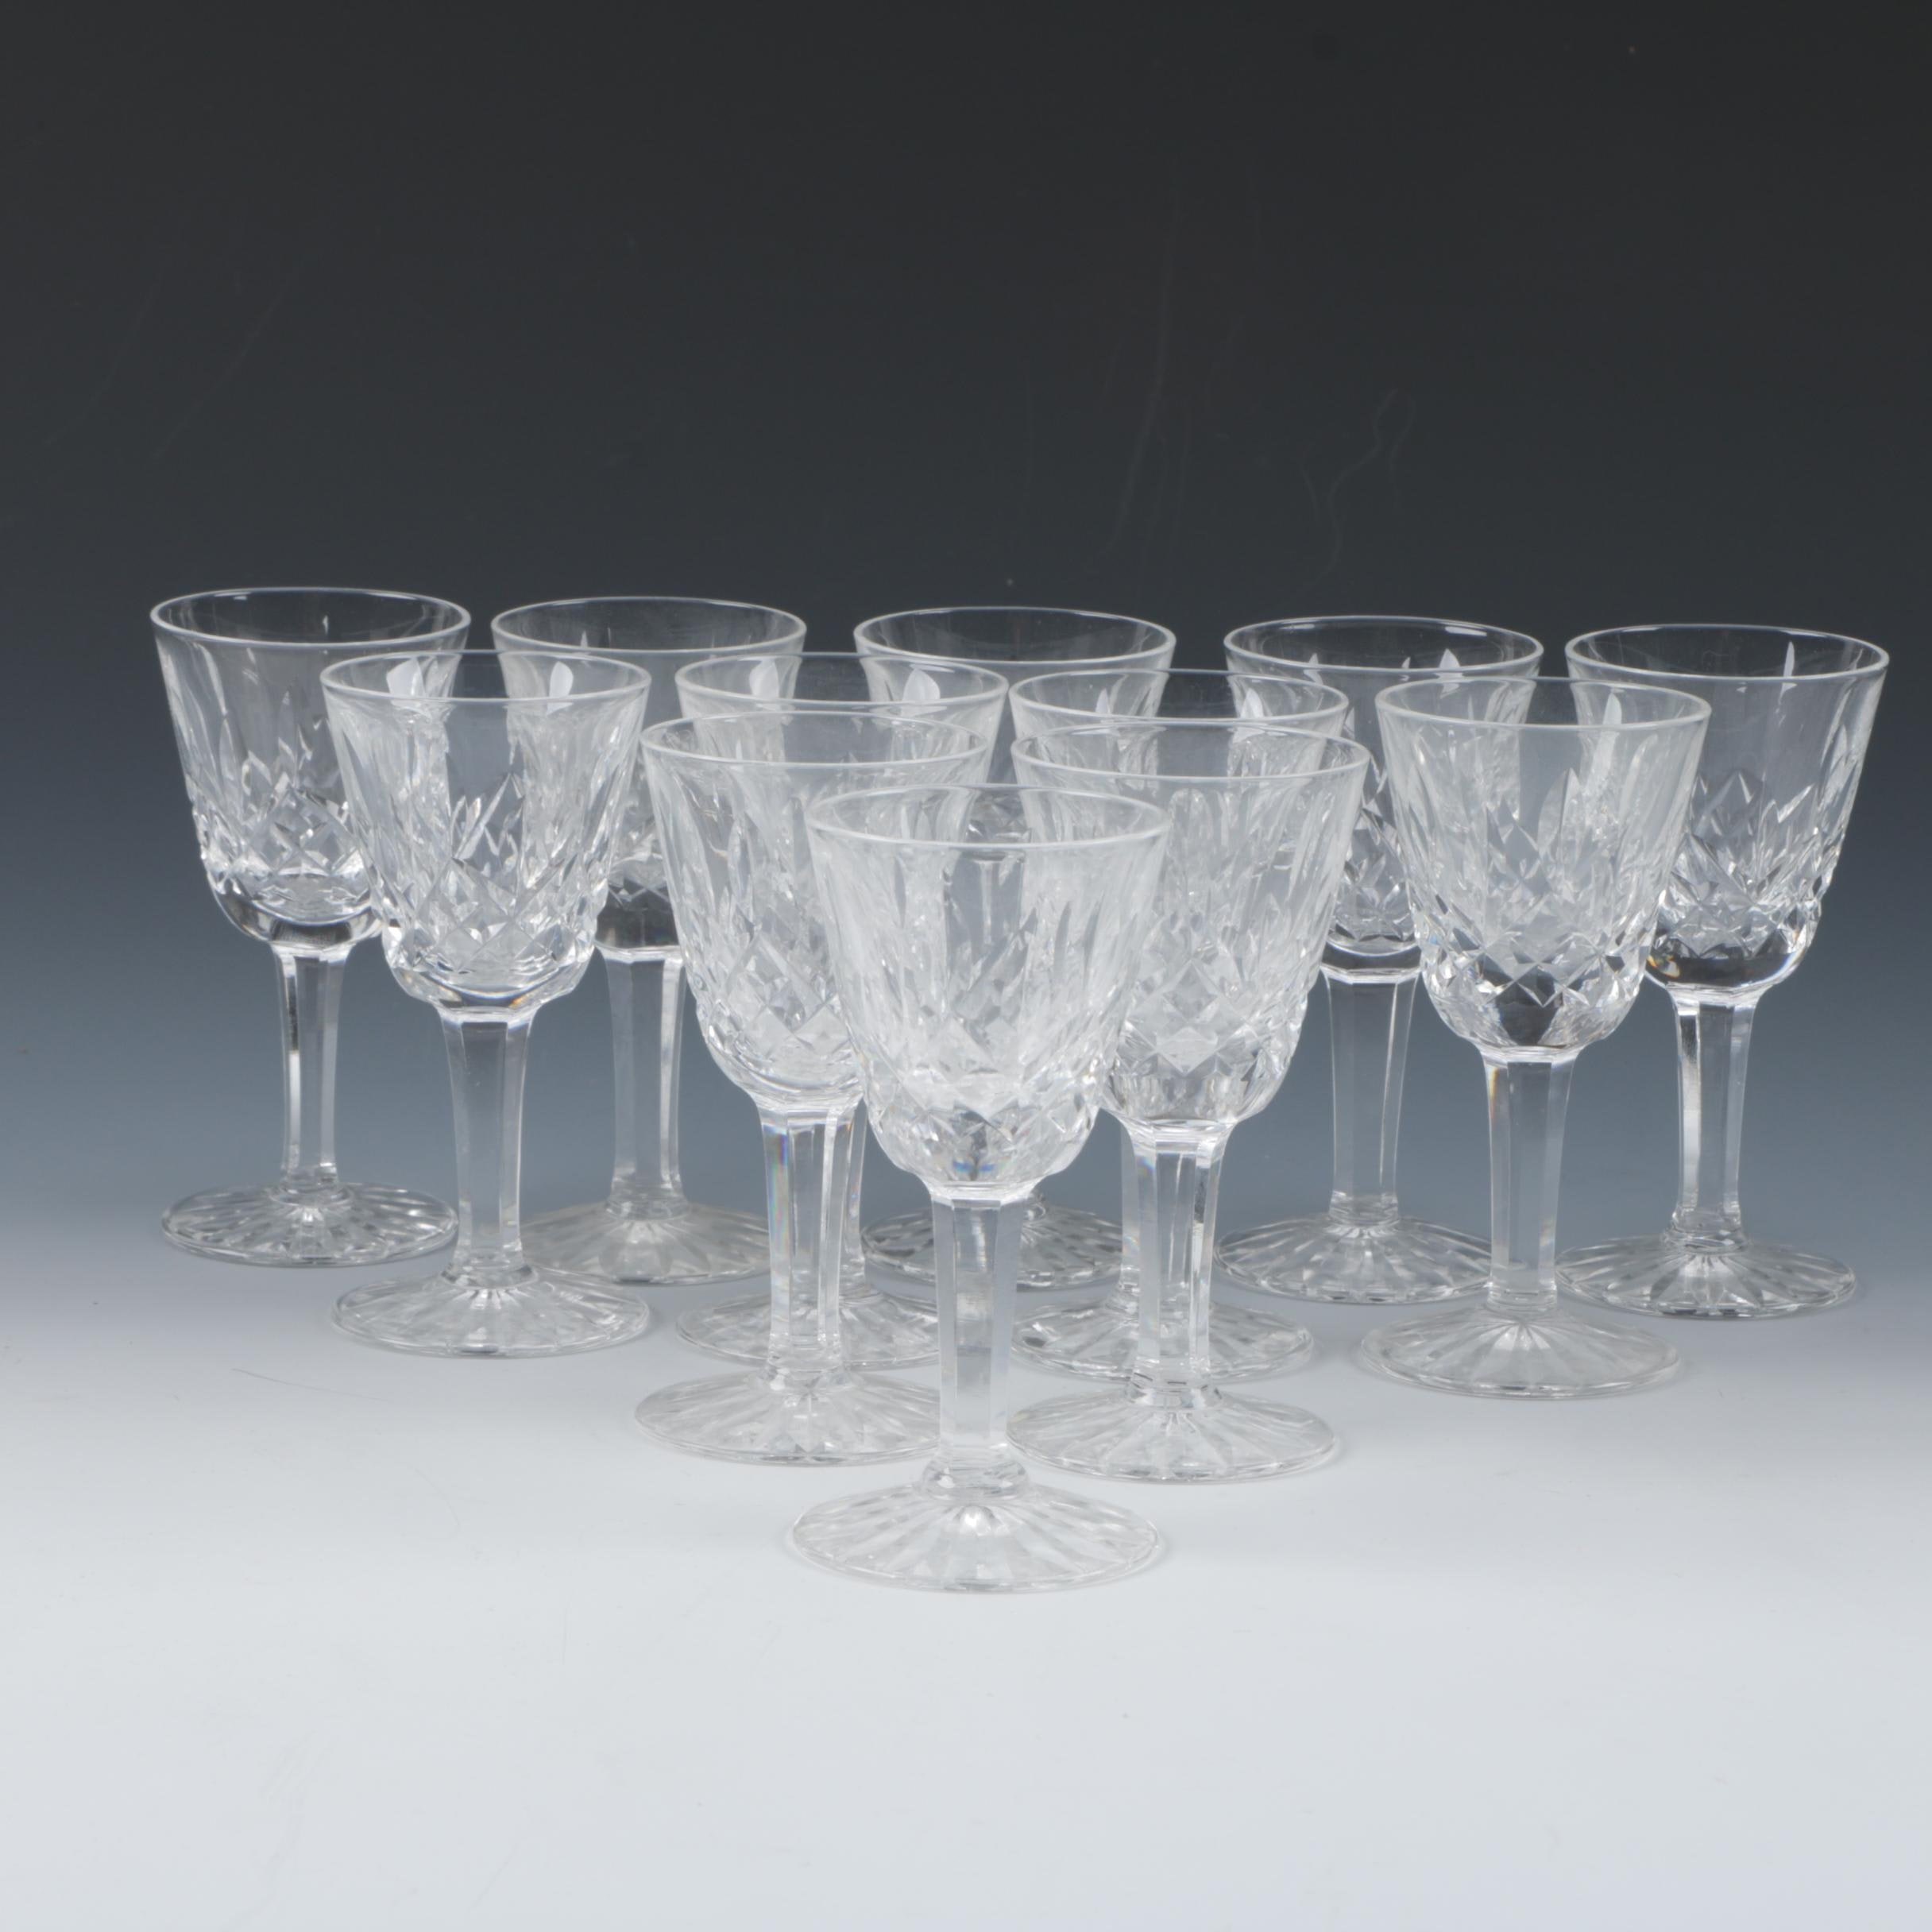 Waterford Crystal 'Lismore' Claret Glasses